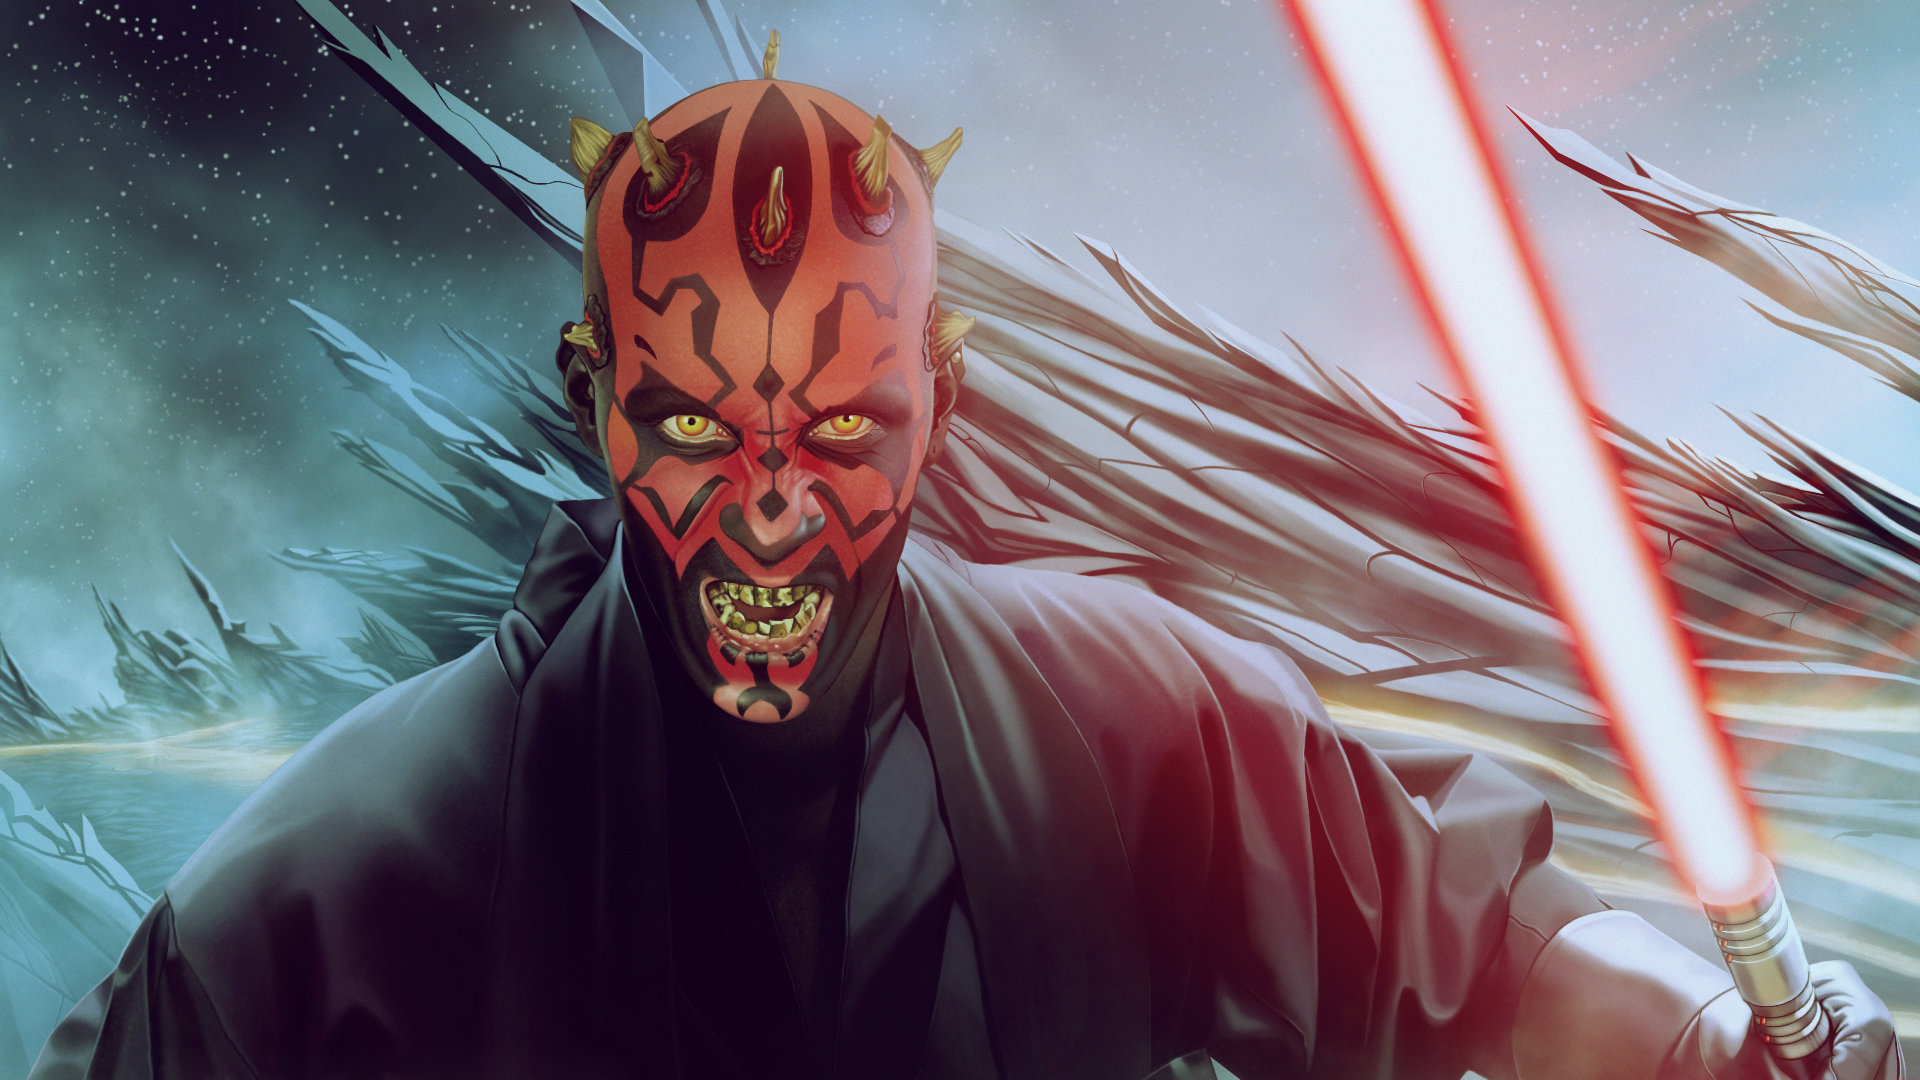 Awesome Star Wars Free Background ID459920 For Full Hd Desktop 1920x1080